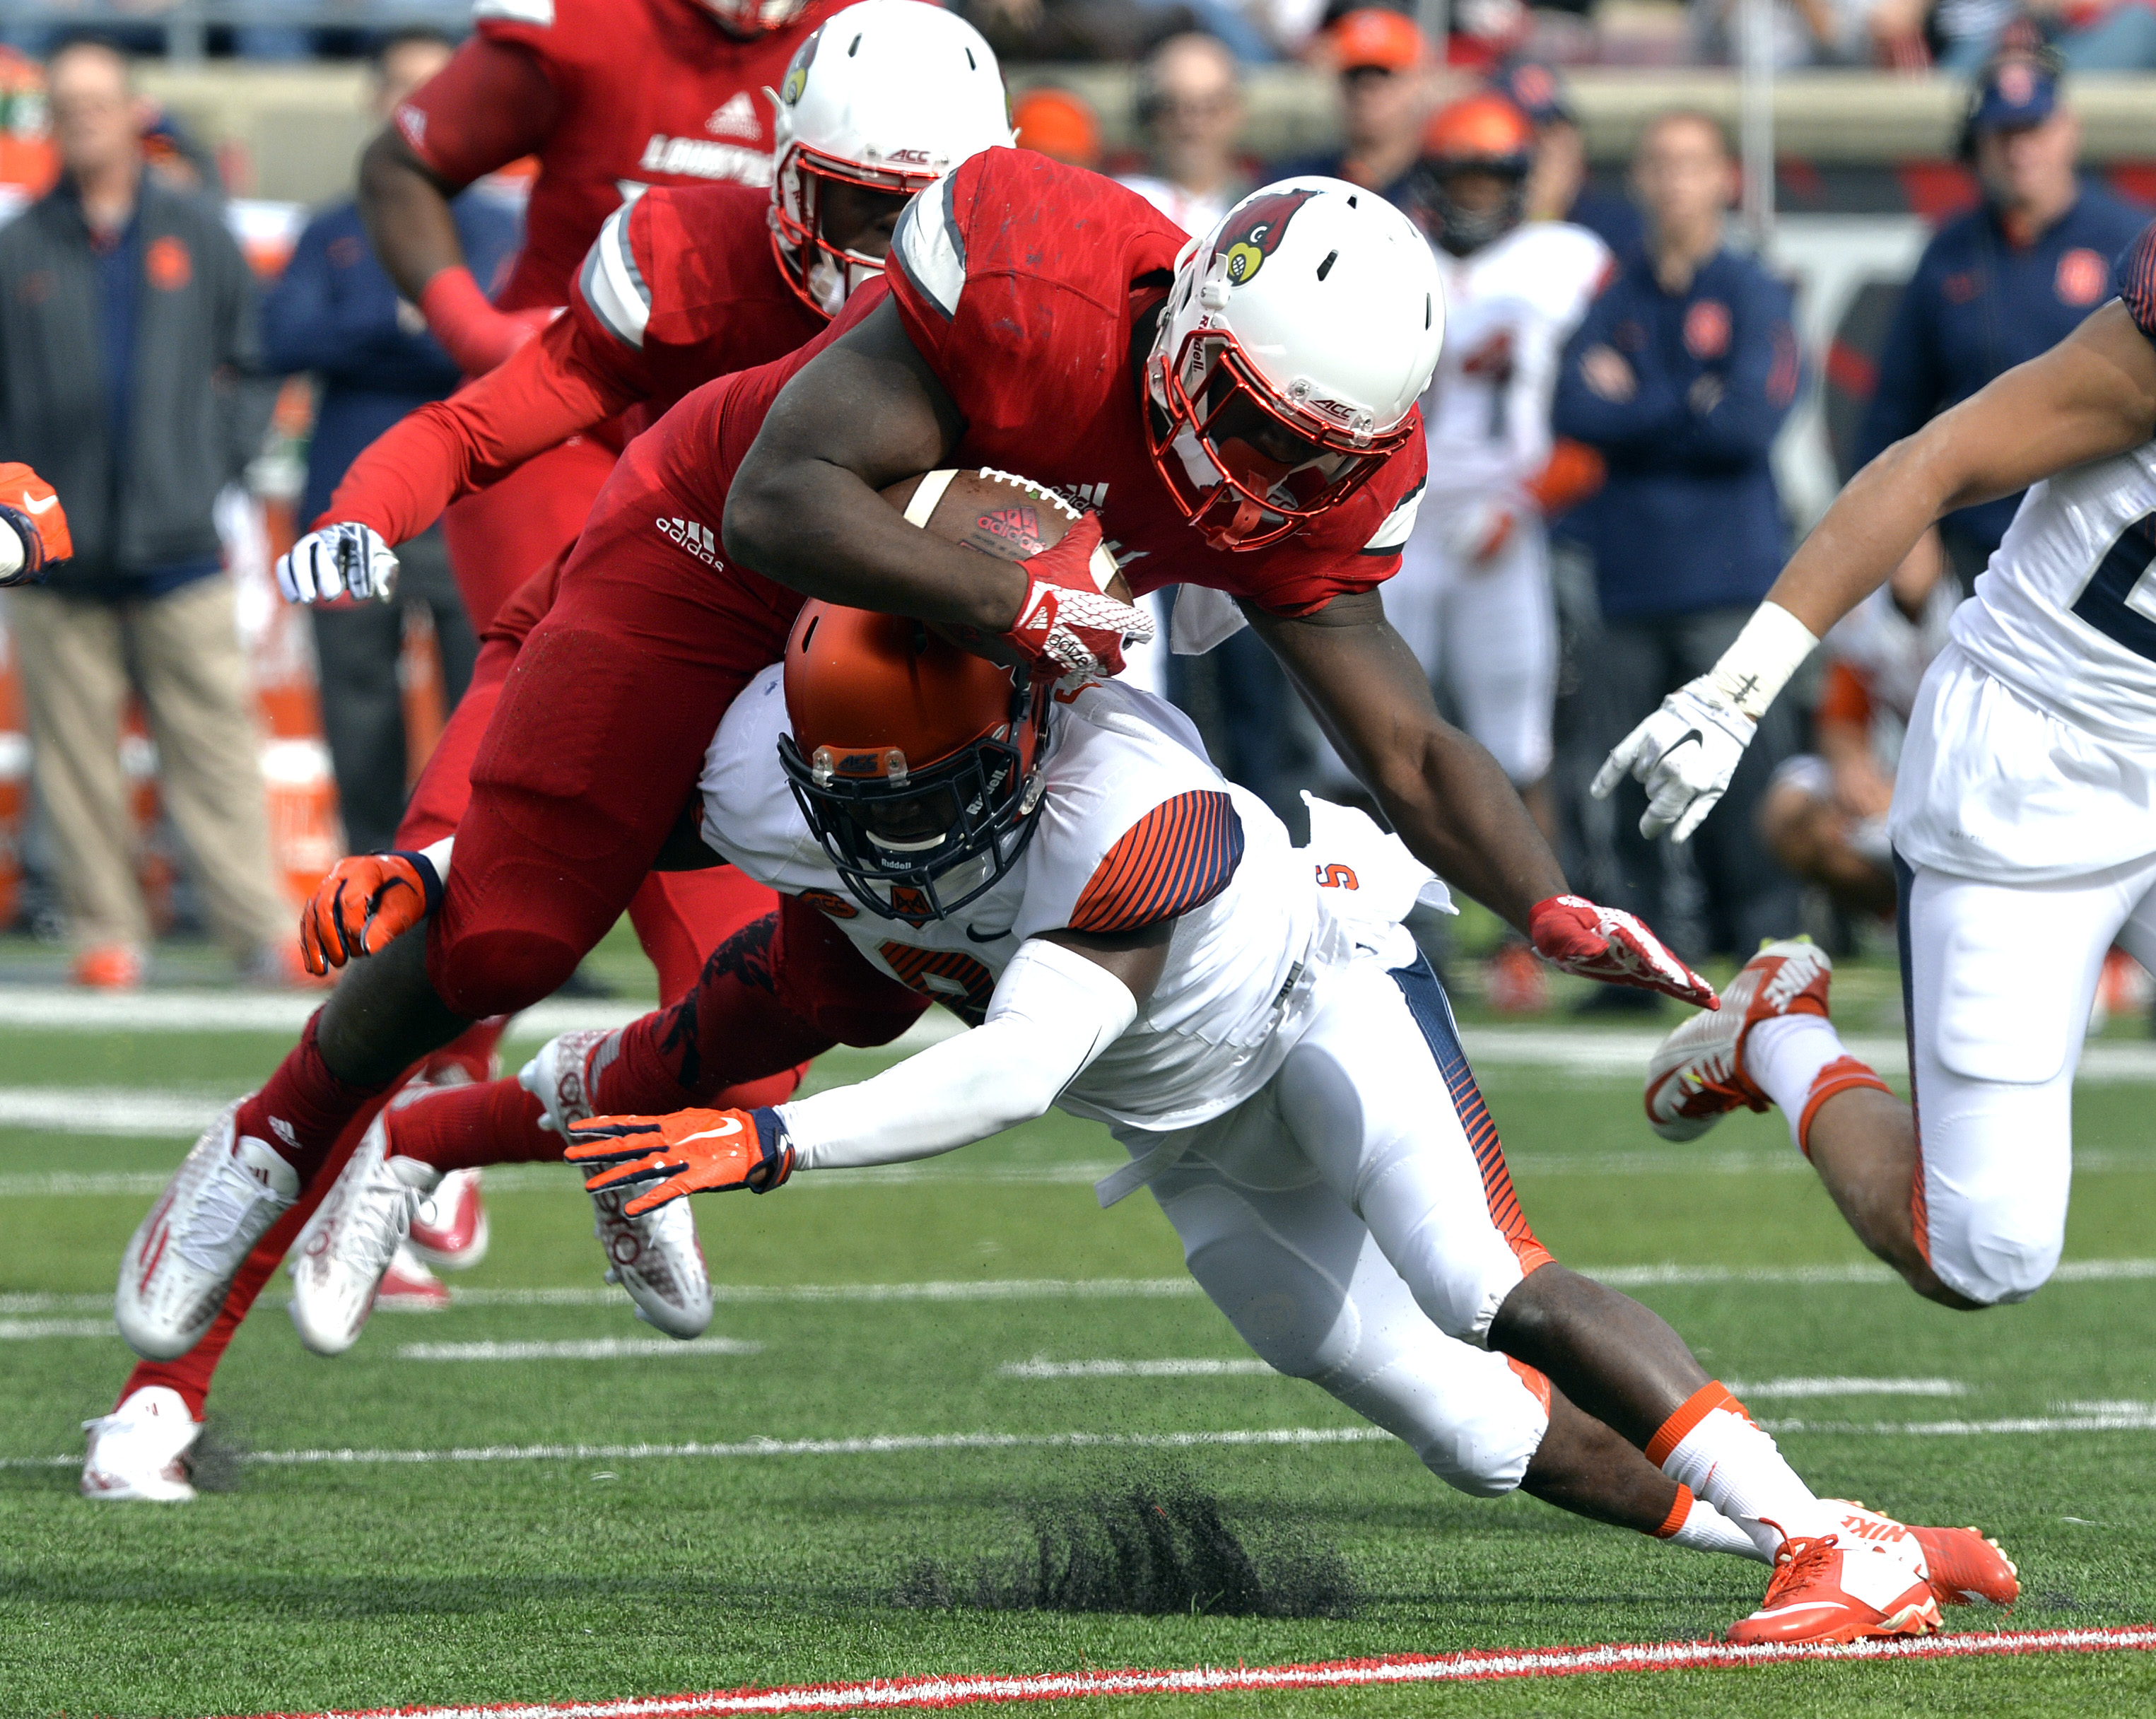 Louisville running back Jeremy Smith, top, is hit by Syracuse safety Antwan Cordy during the first half of an NCAA college football game Saturday, Nov. 7, 2015, in Louisville, Ky. (AP Photo/Timothy D. Easley)